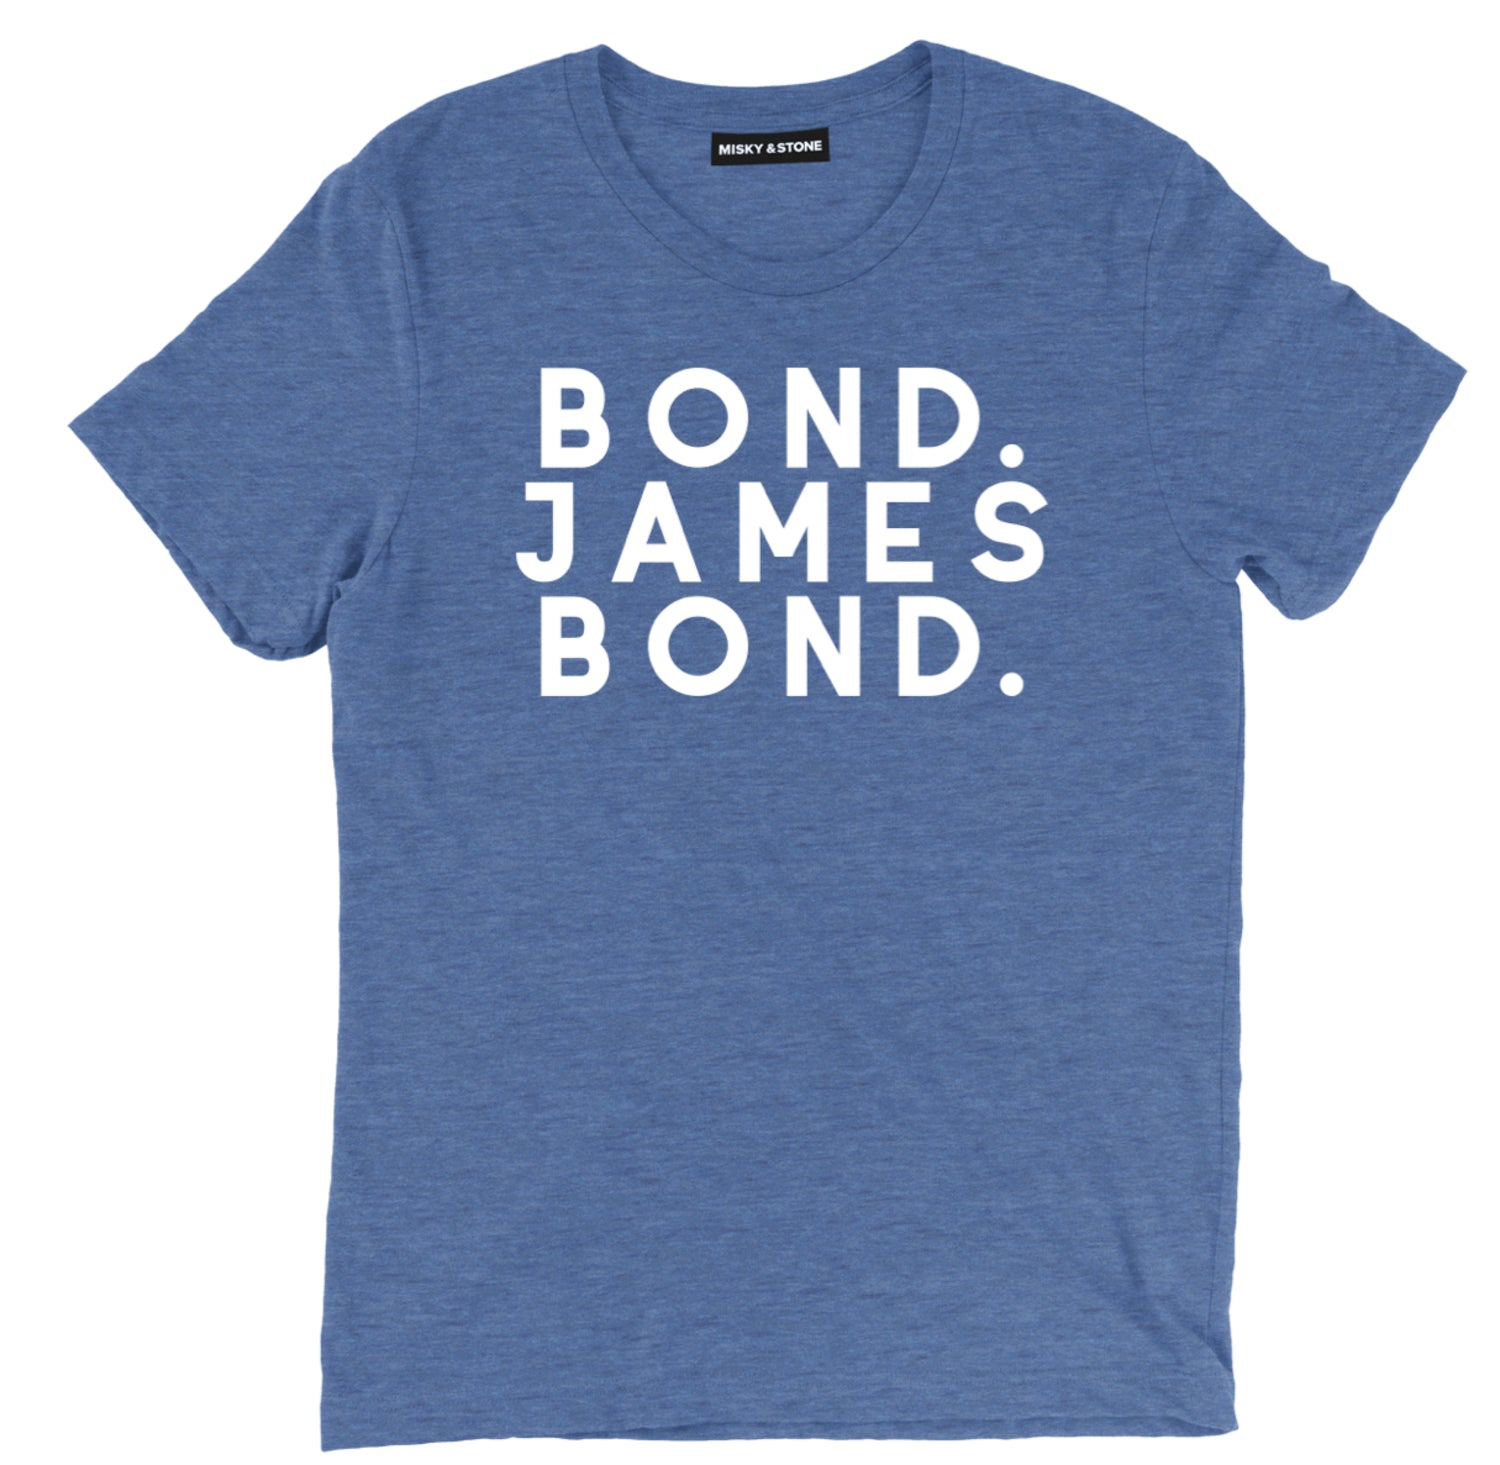 bond james bond tee, james bond movie quote tee, james bond t shirt